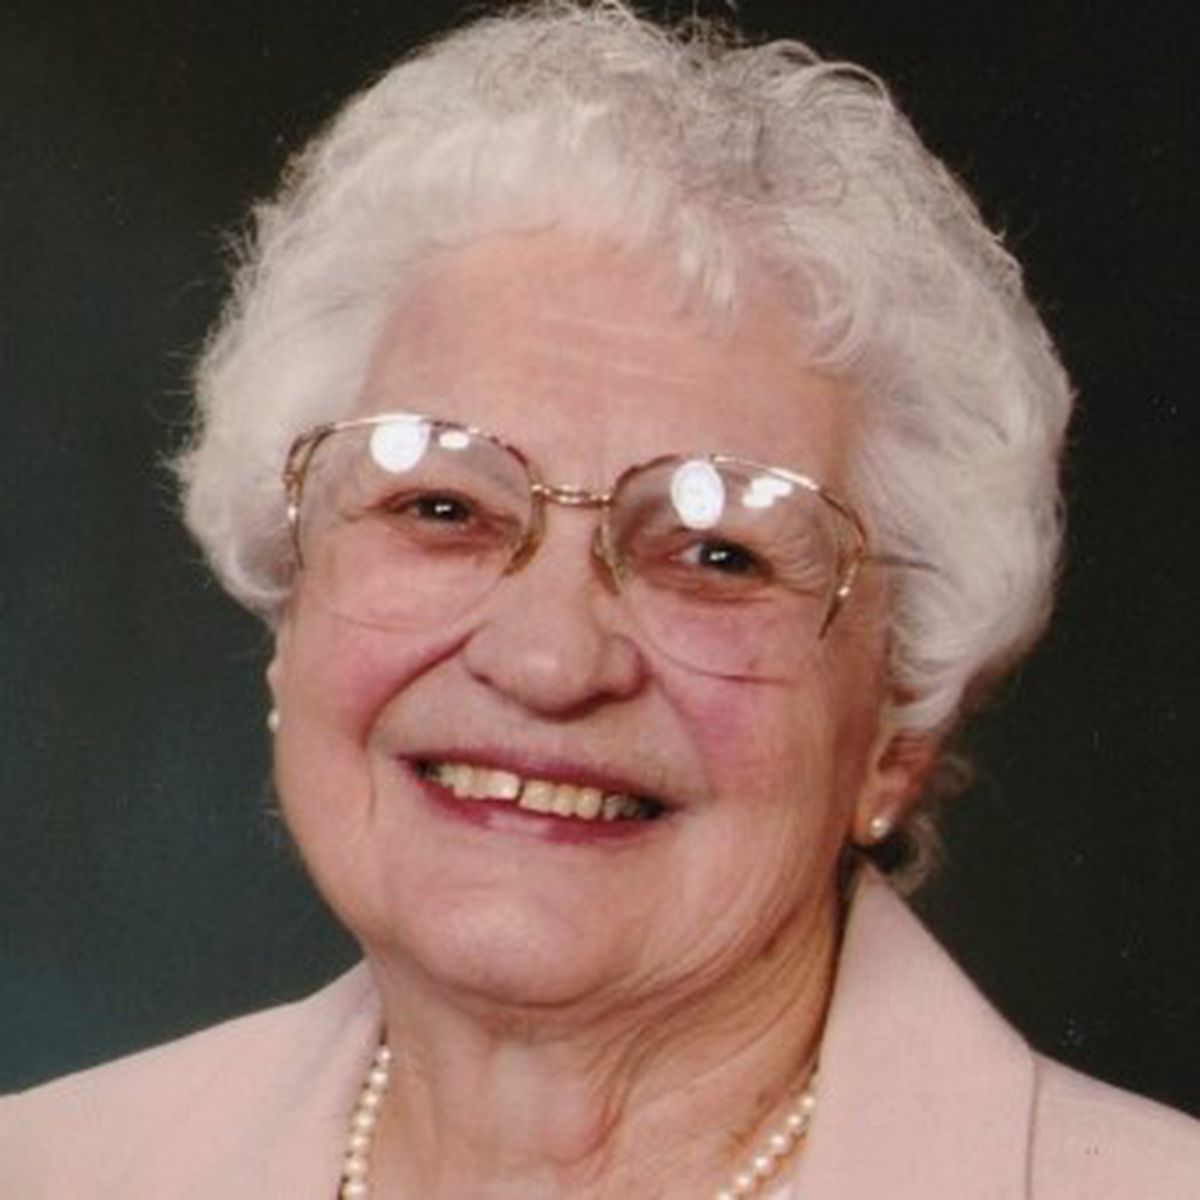 Evelyn J. Seymour, 92, of Potsdam